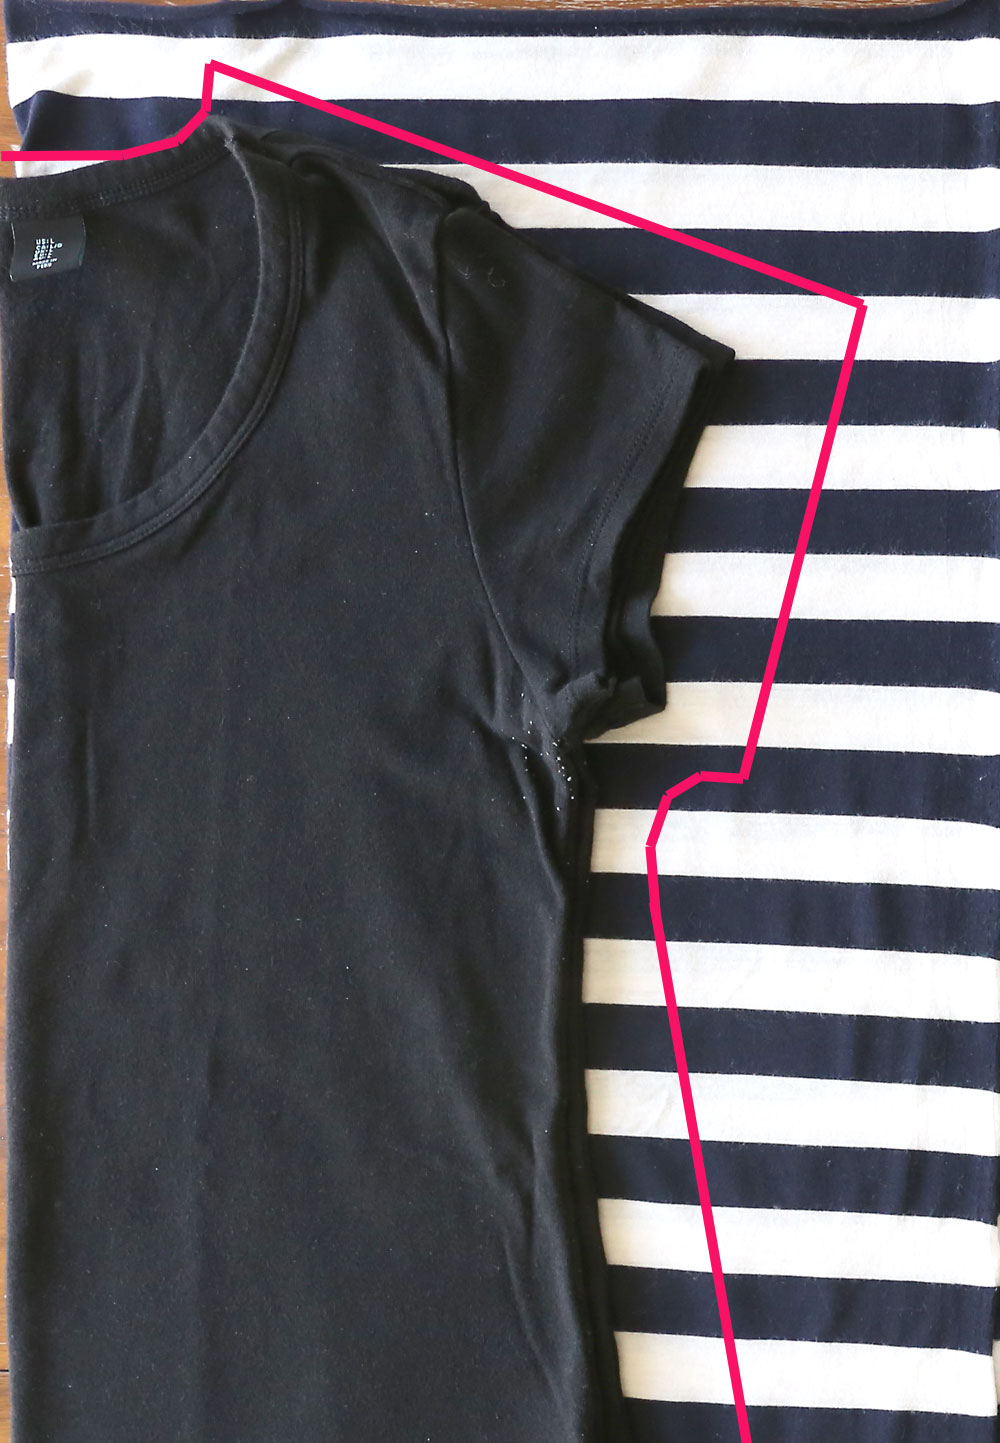 Tracing around a t-shirt onto fabric